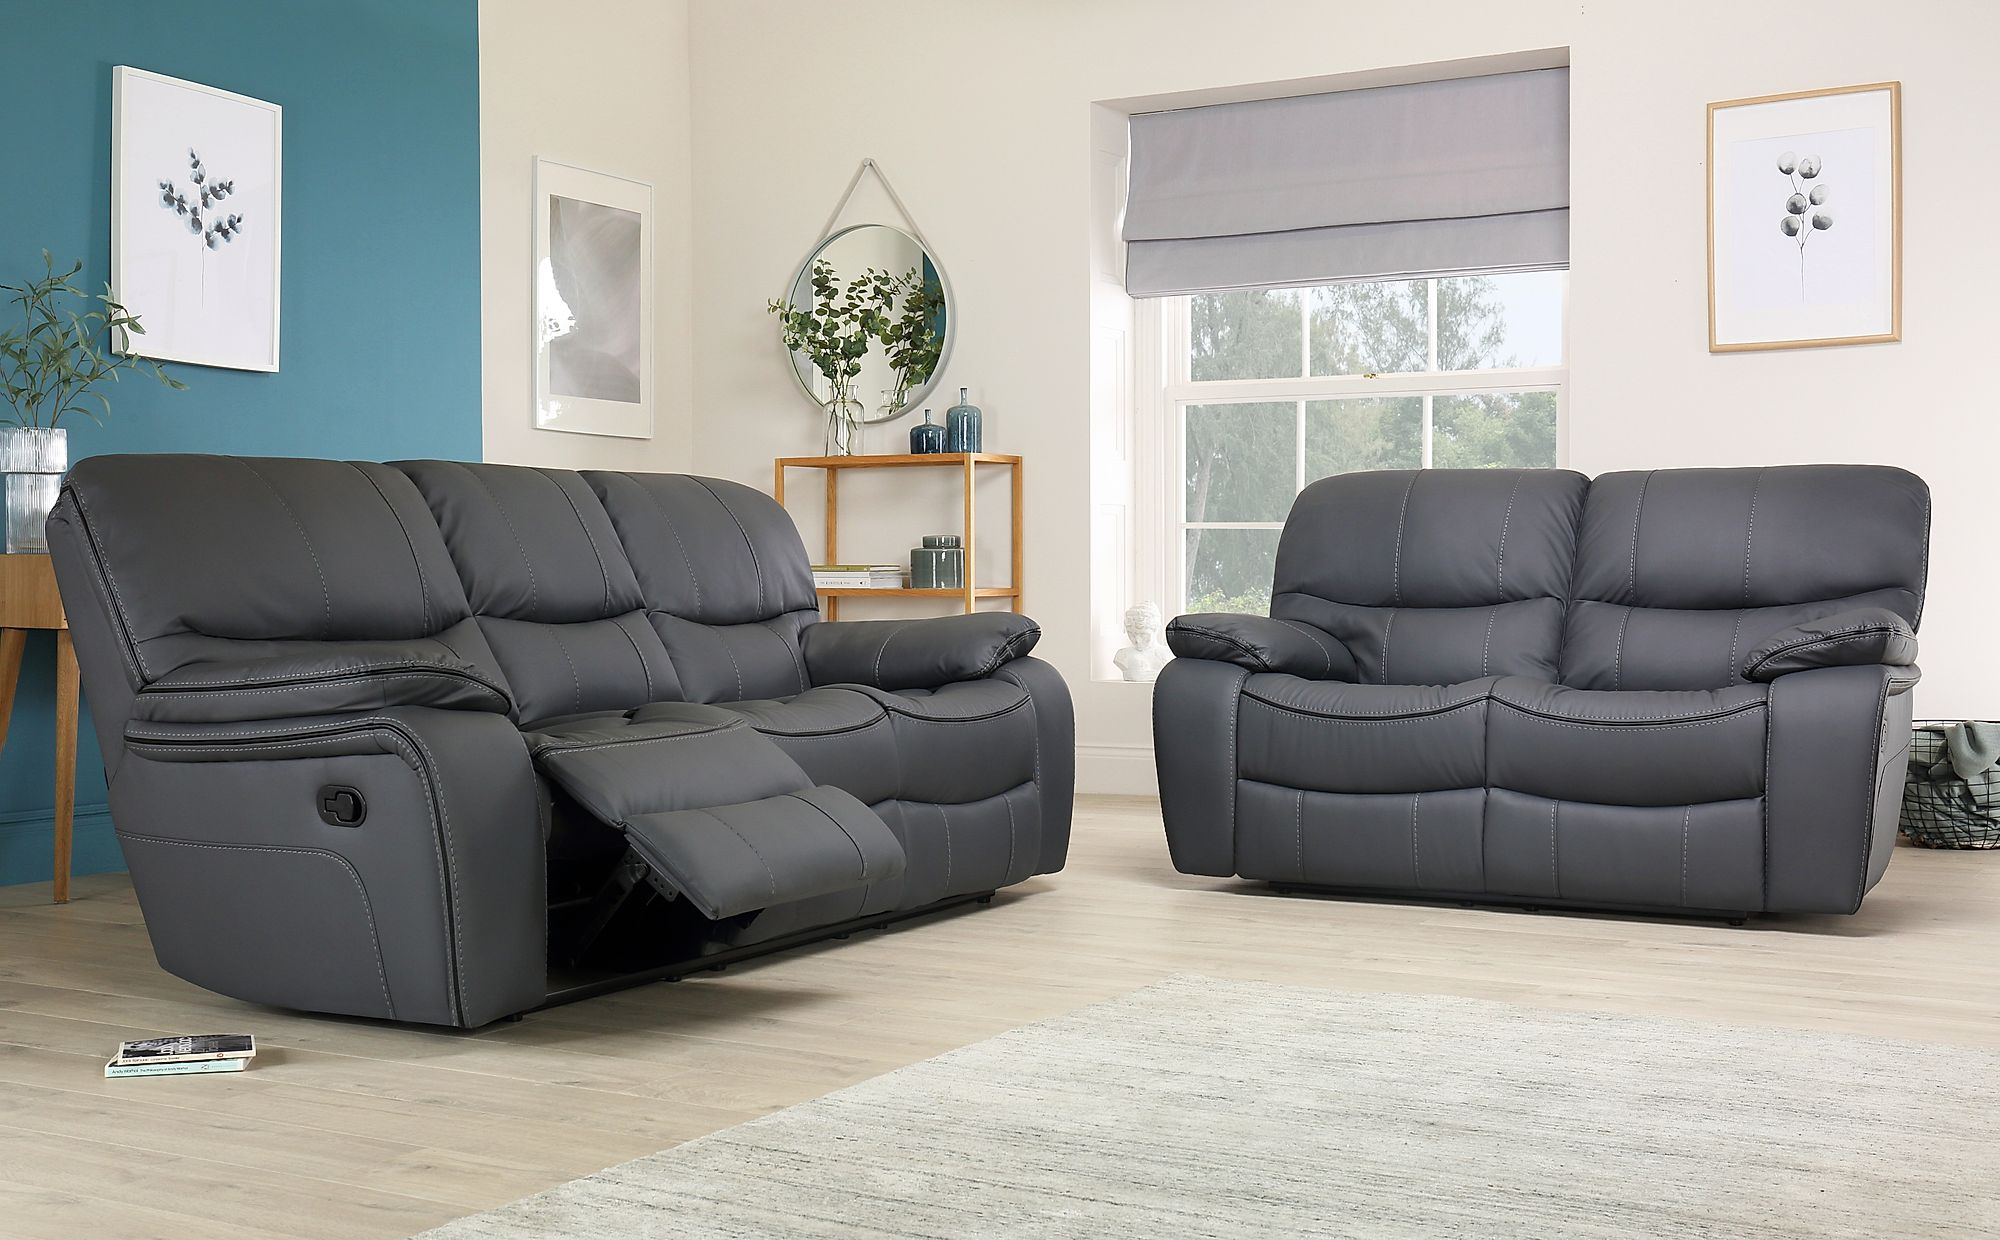 Beaumont Grey Leather Recliner Sofa Range Ebay